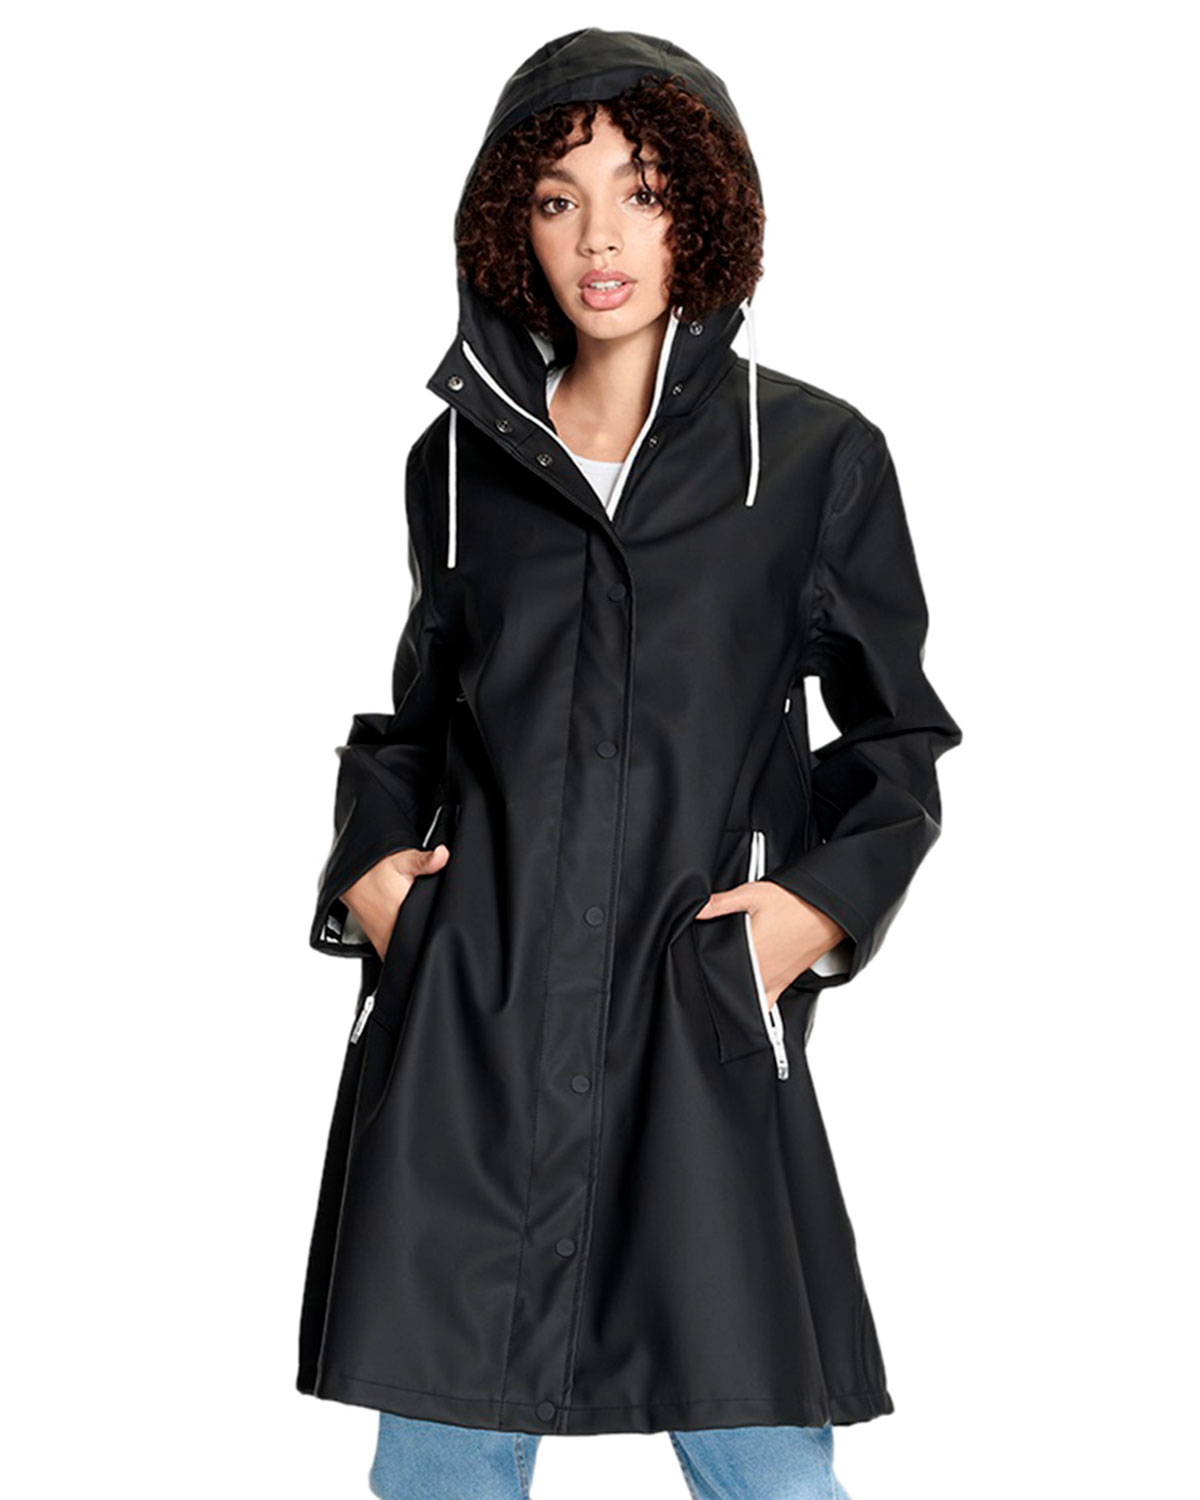 UGG Australia Zooey Black Oversized Raincoat